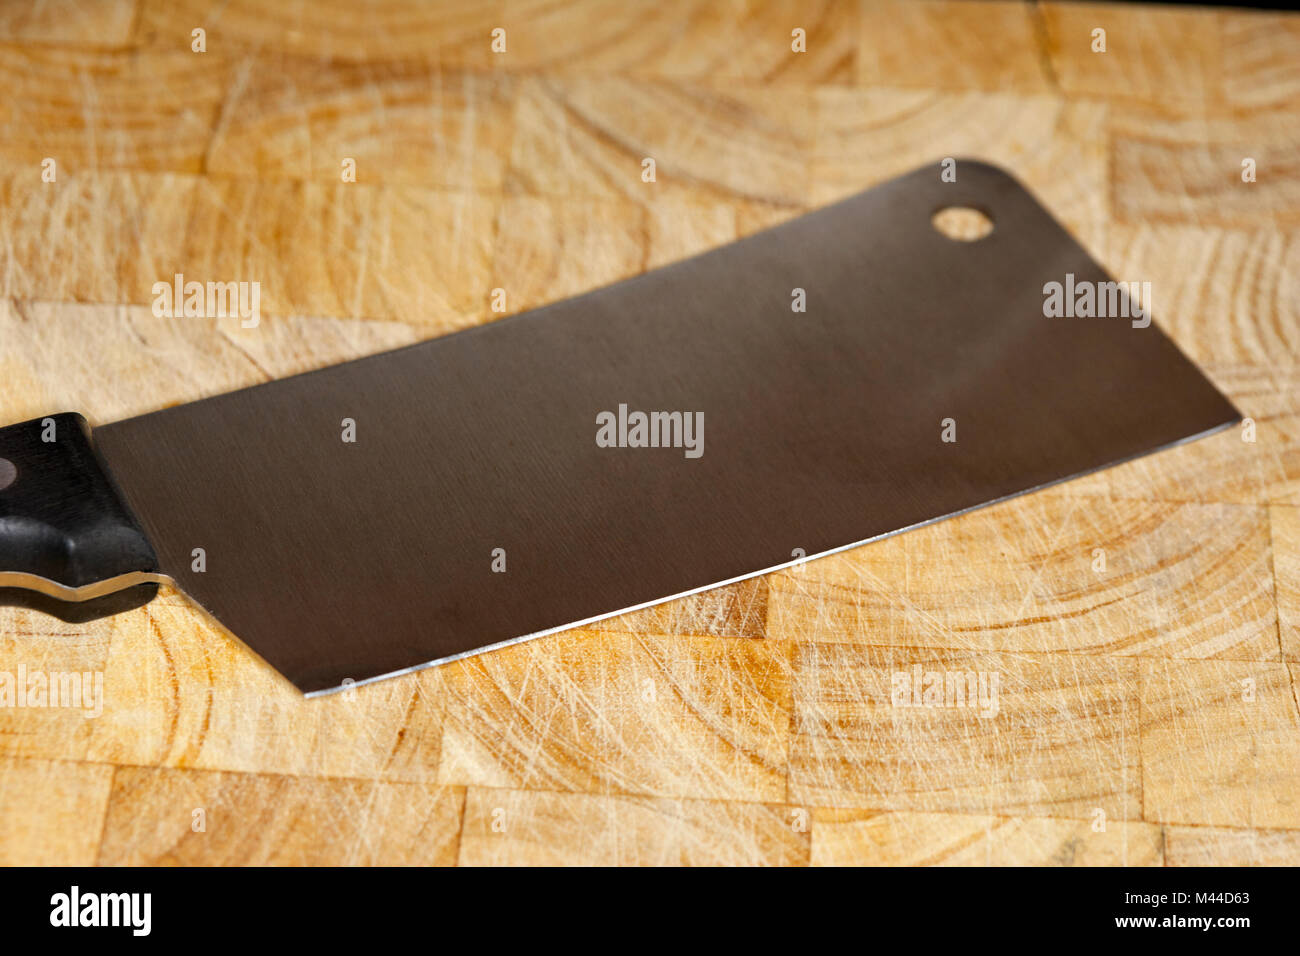 chinese cleaver knife sitting on a wooden butchers block - Stock Image